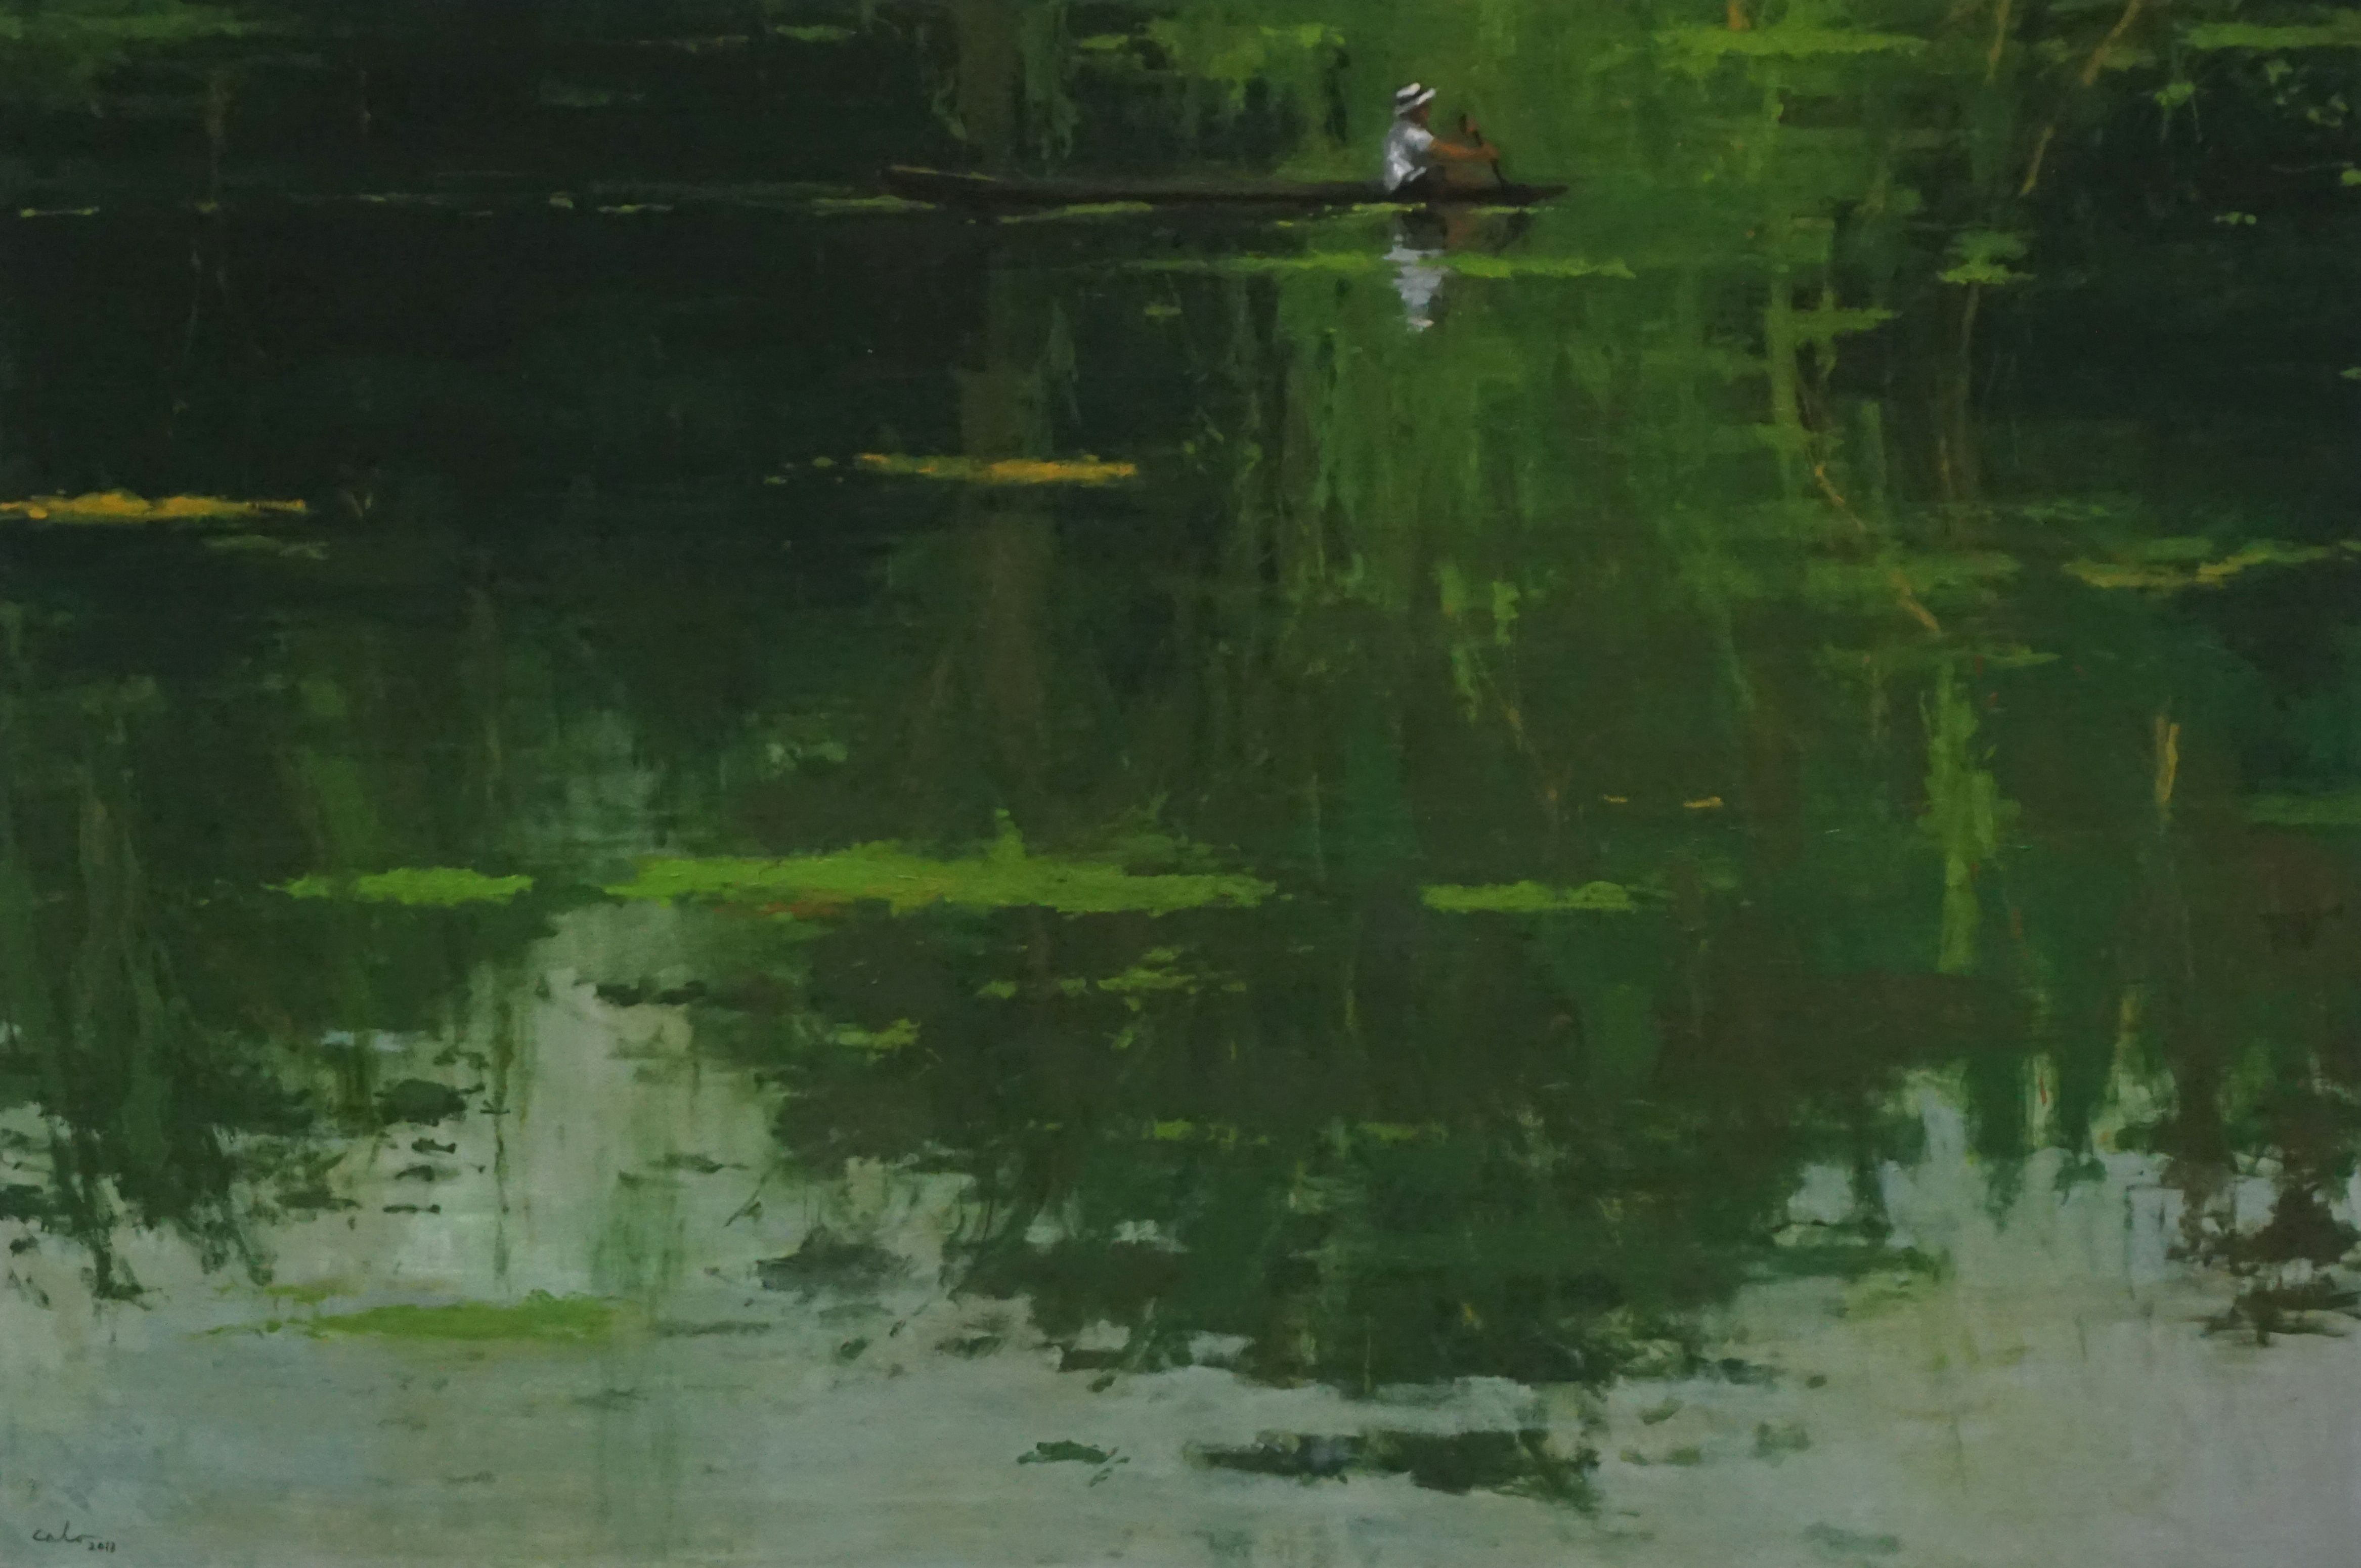 Reflection n°5, Jungle series,Calo  Carratalá,Painting